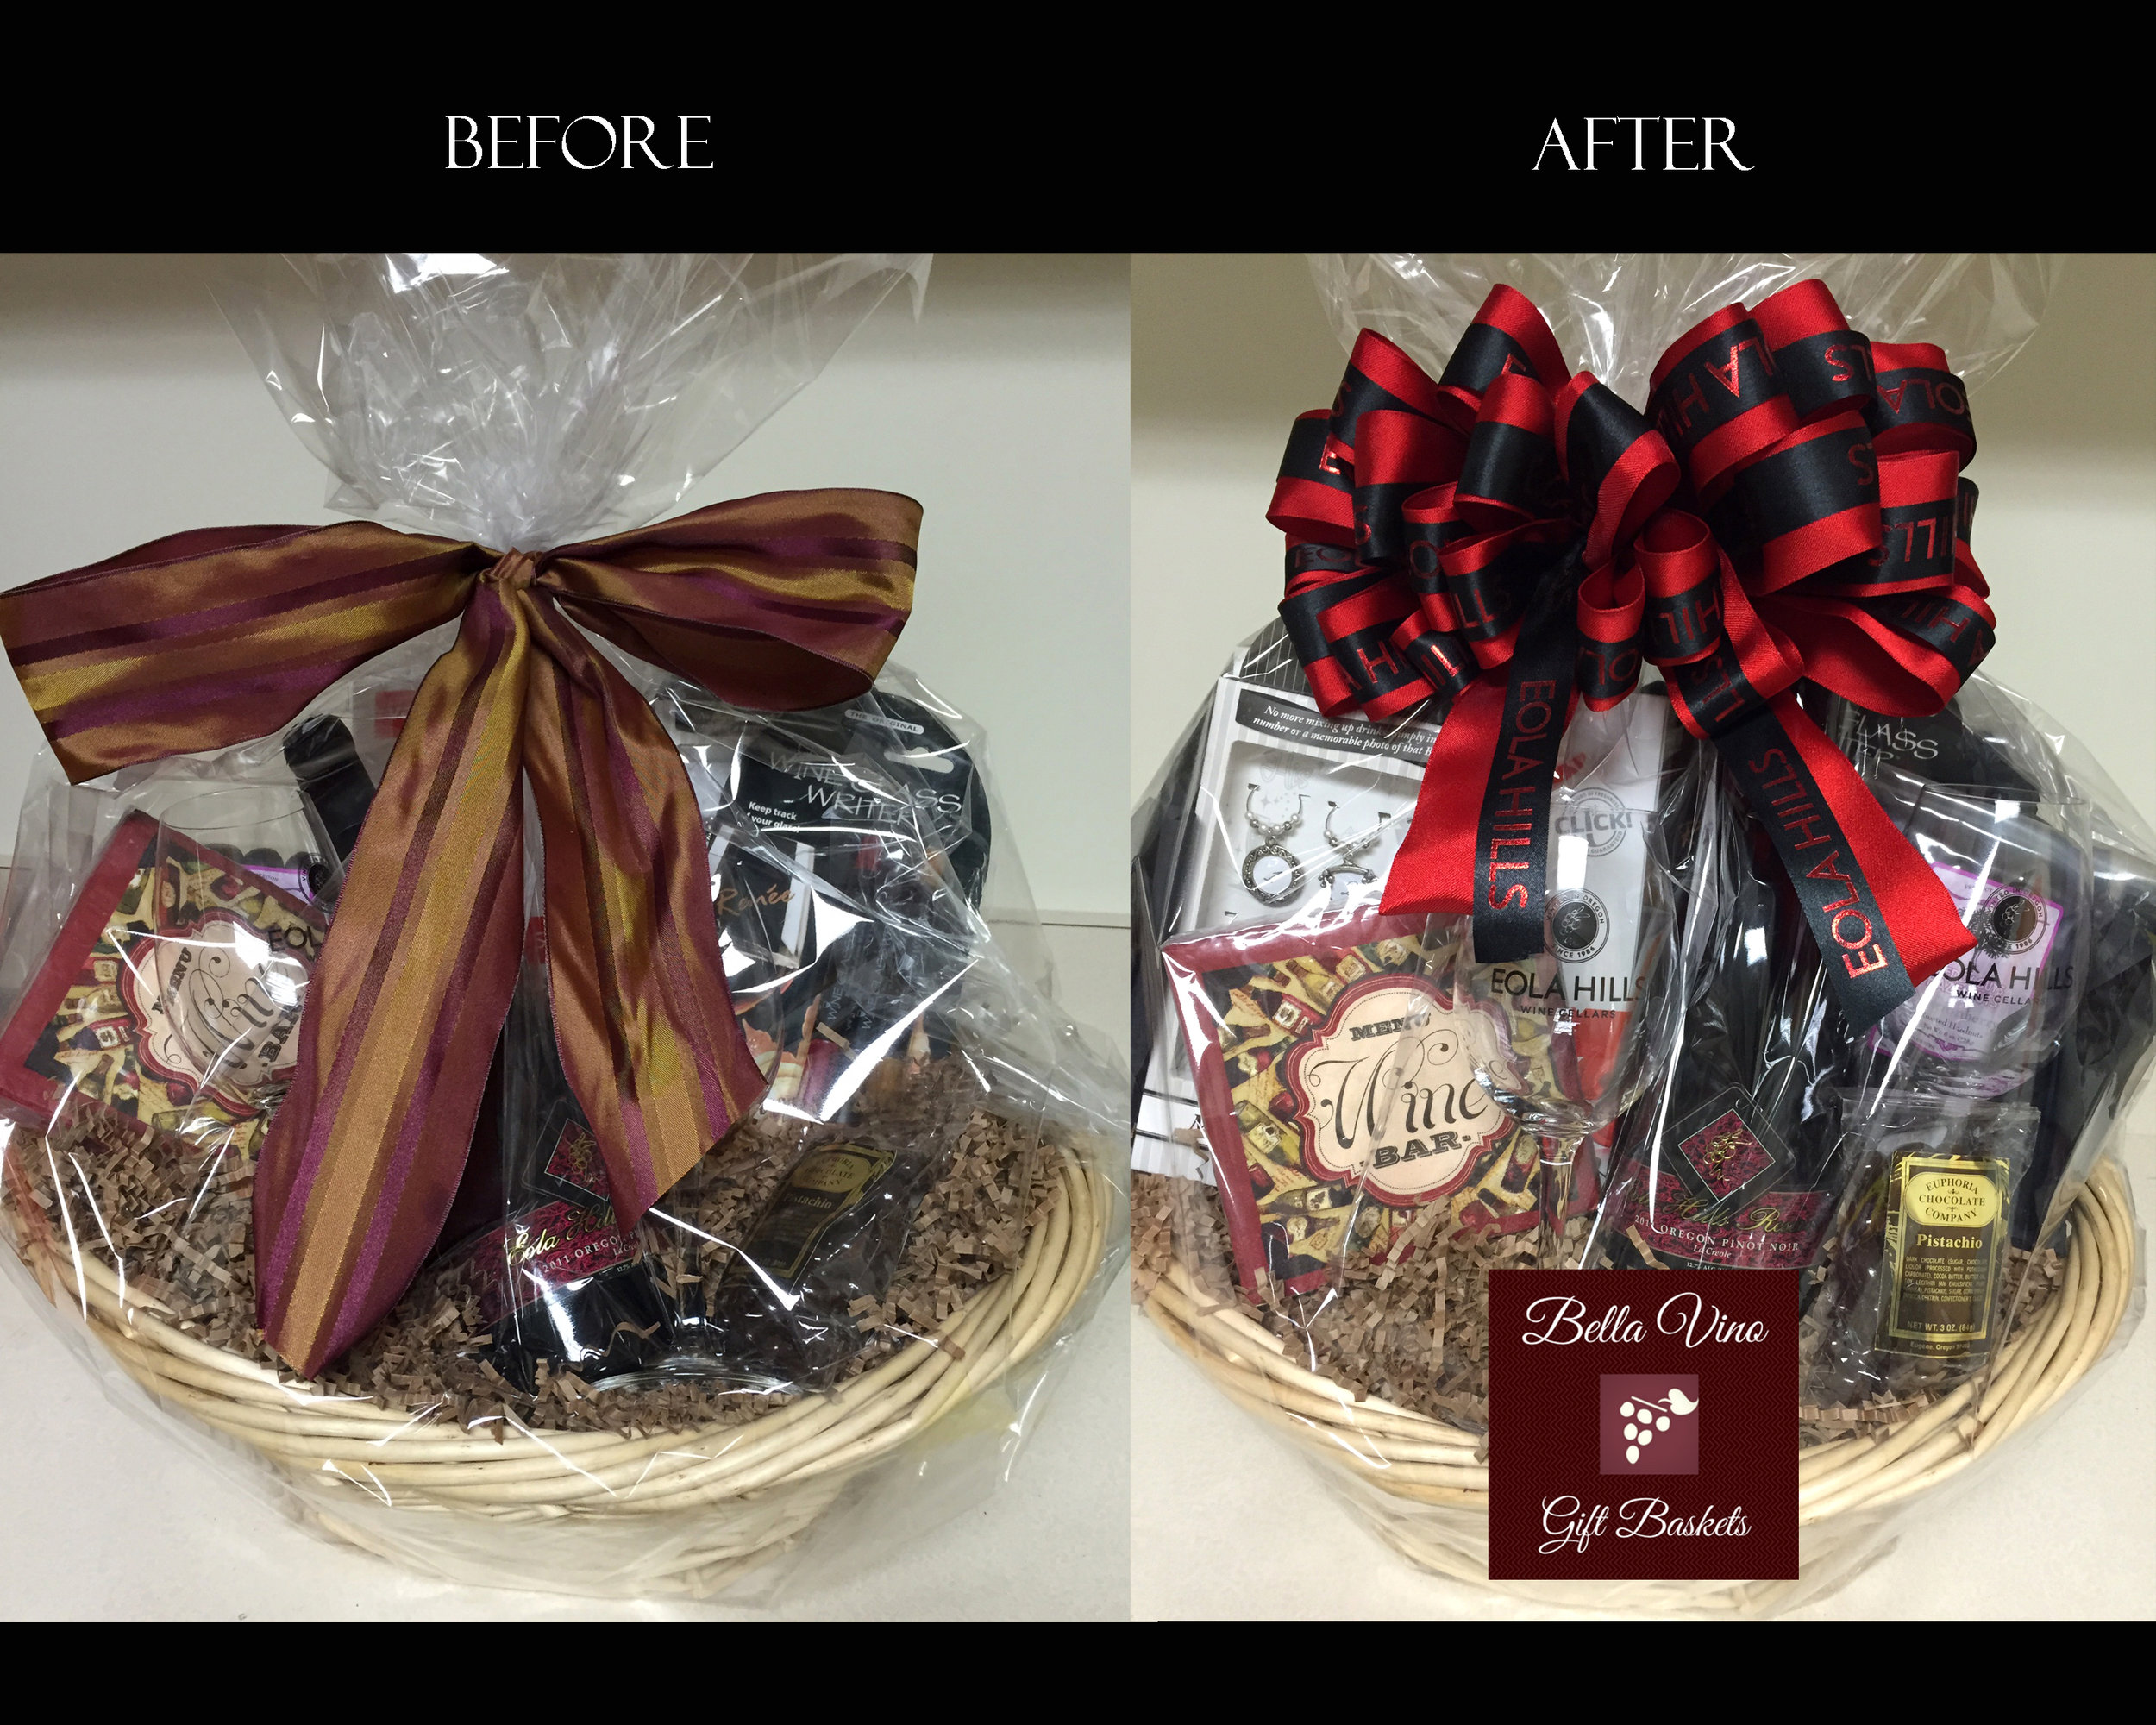 before & after a gift designer's intervention-the exact gift with only the alteration of presentation. Which one looks worth more to you?